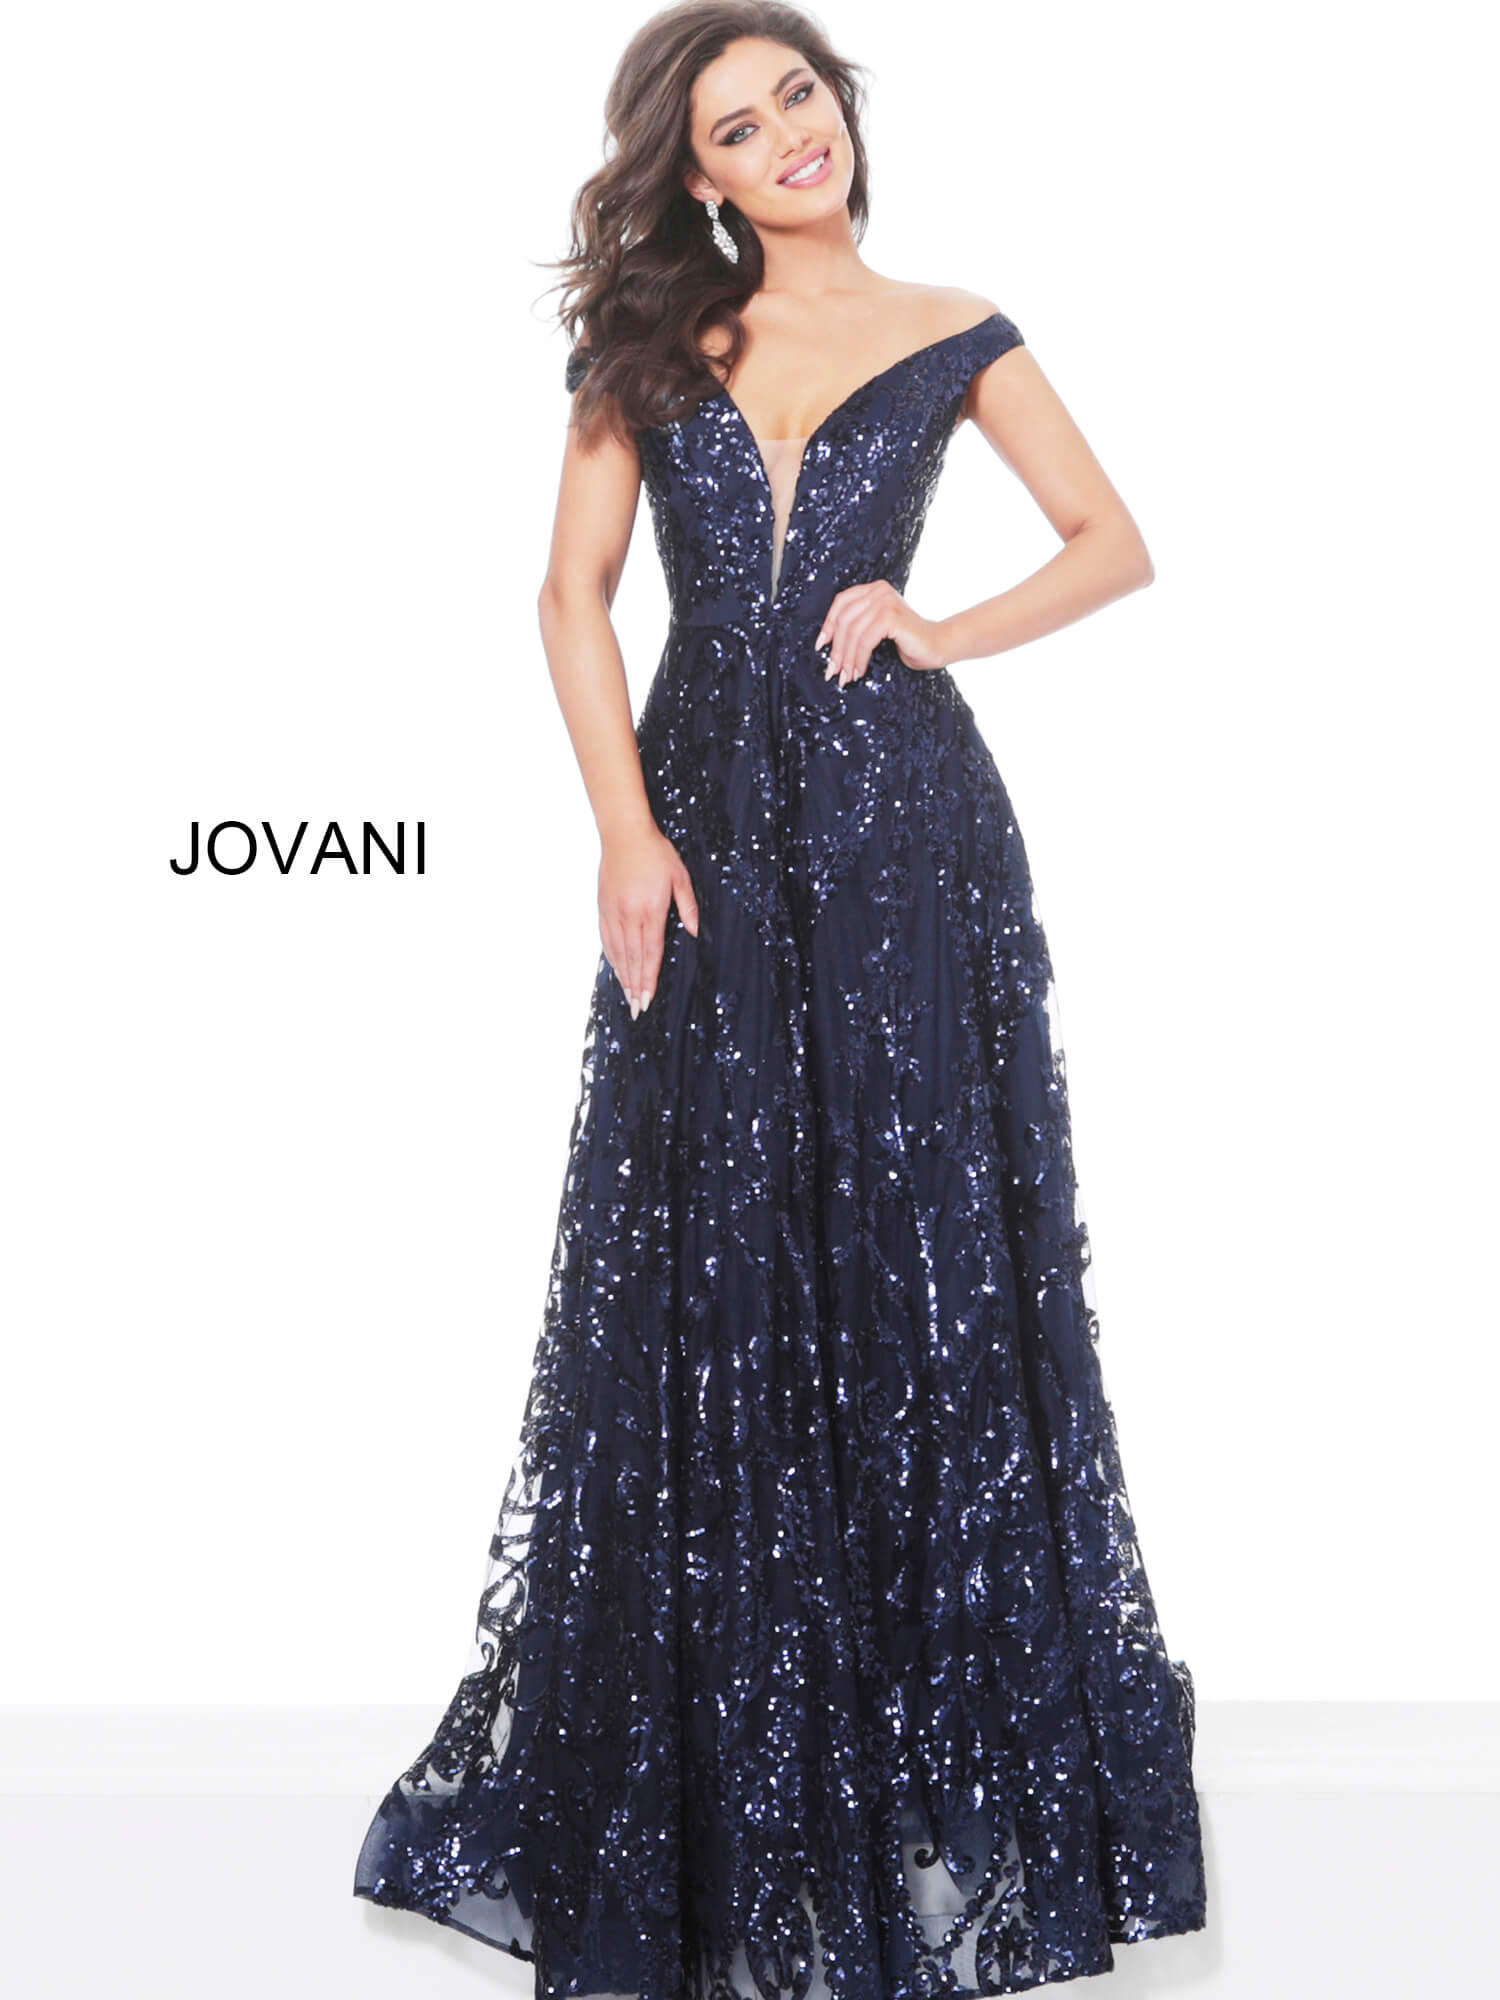 Jovani 02932 off the shoulder plunging neckline aline sequin long dress